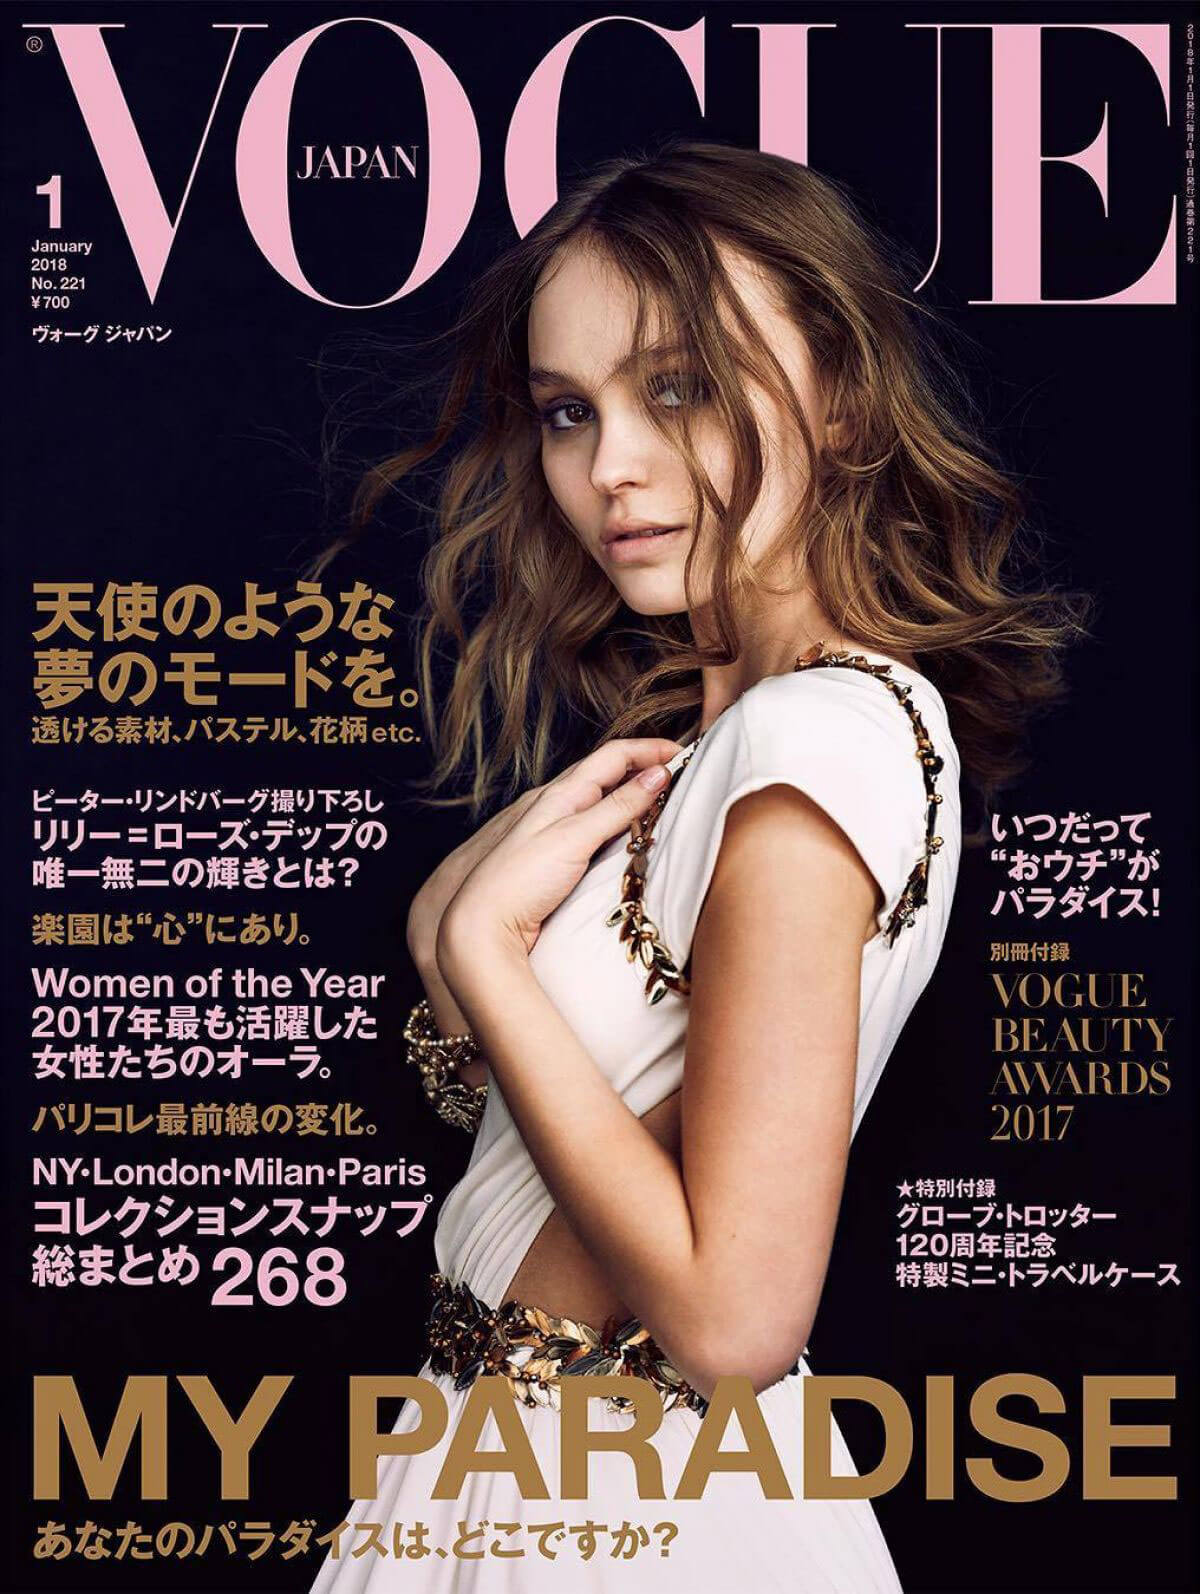 Lily-Rose Depp Stills on the Cover of Vogue Magazine, Japan January 2018